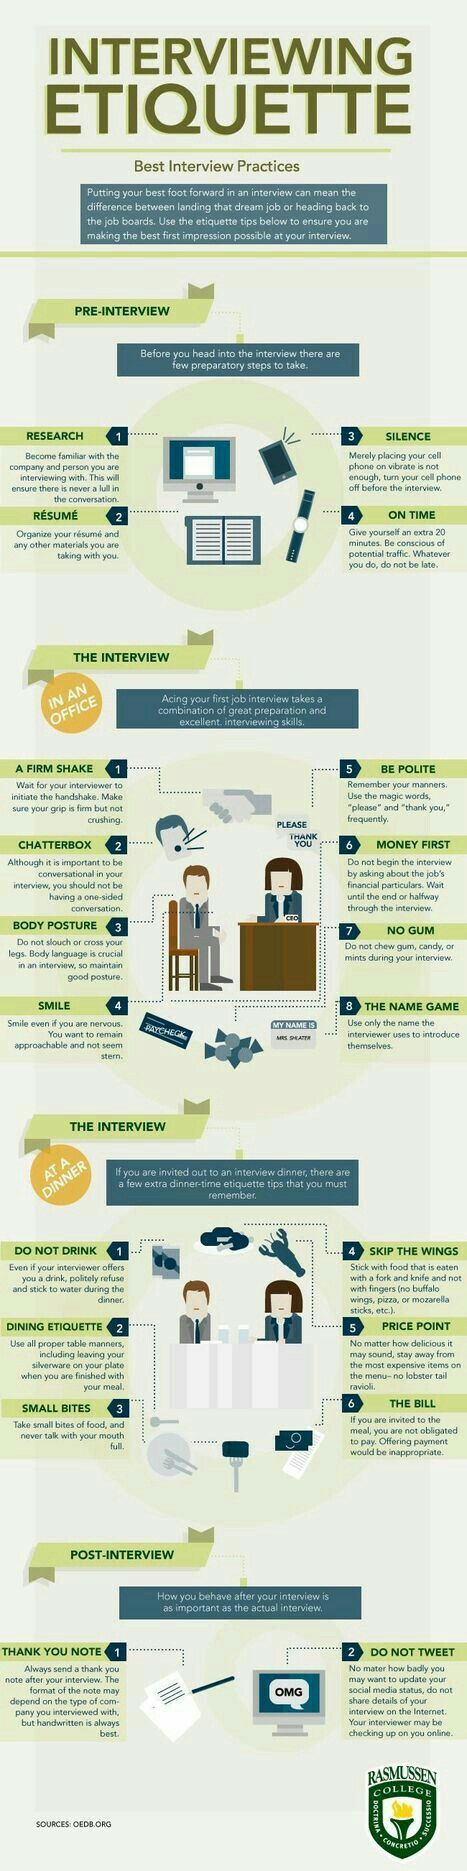 infographic Interviewing Etiquette Best Interview Practices 10